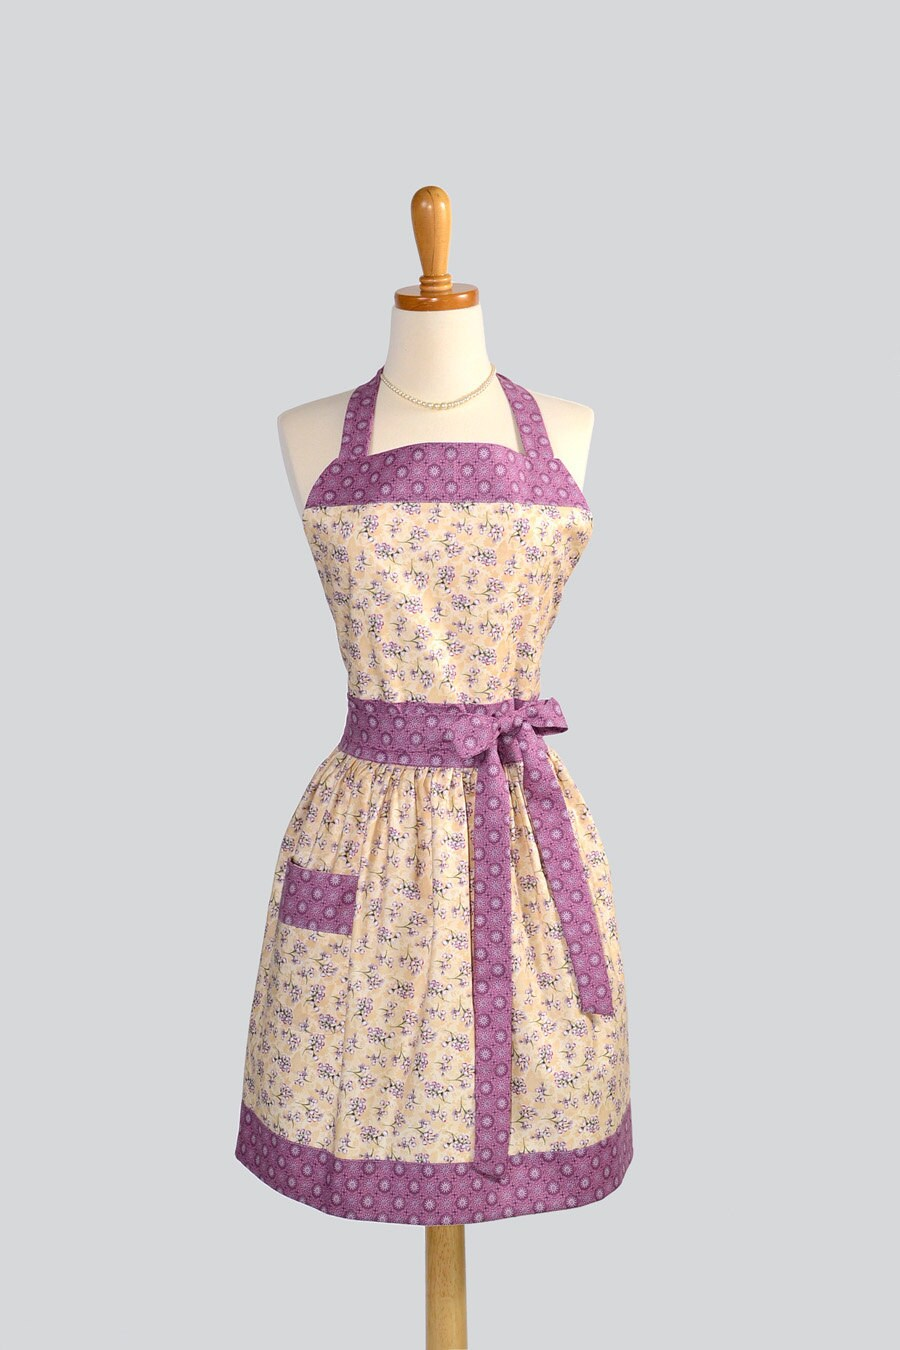 Womens Bib Full Apron : Full Kitchen Apron in Vintage Indigo Lavender Flowers with Creamy Background Perfect for Monogram or Persoalization